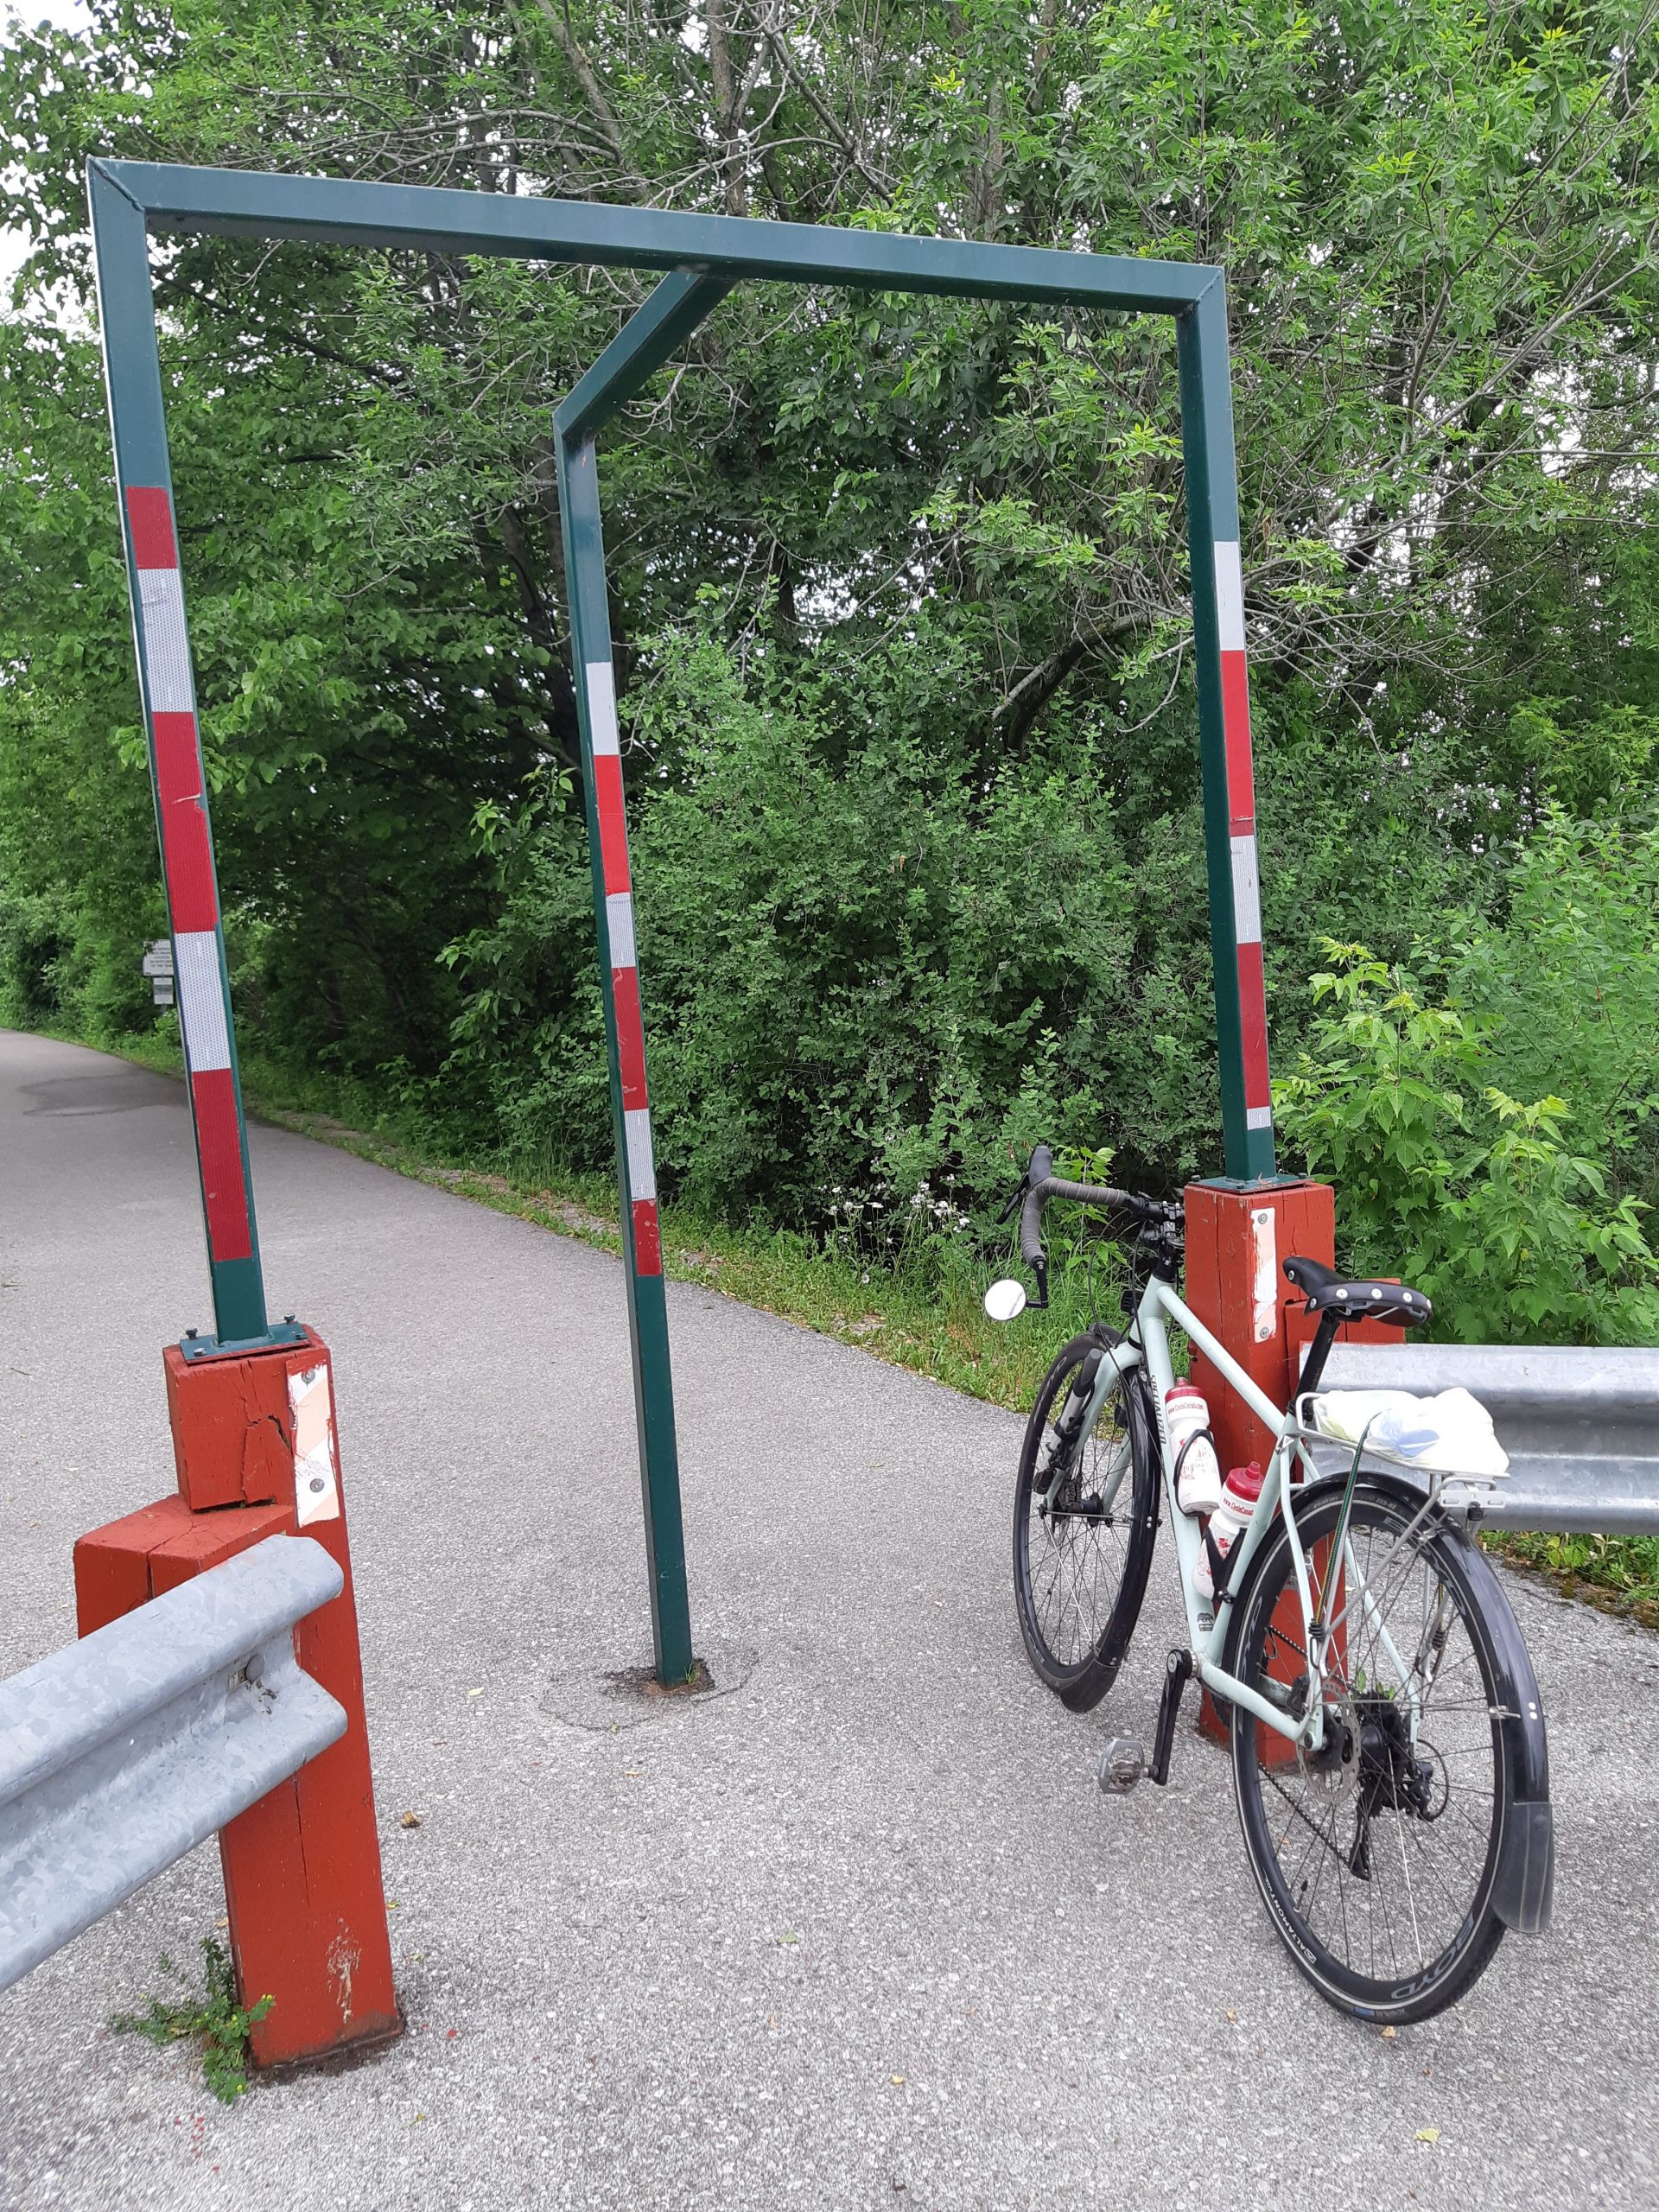 Trail Barriers to Control Access and Speed